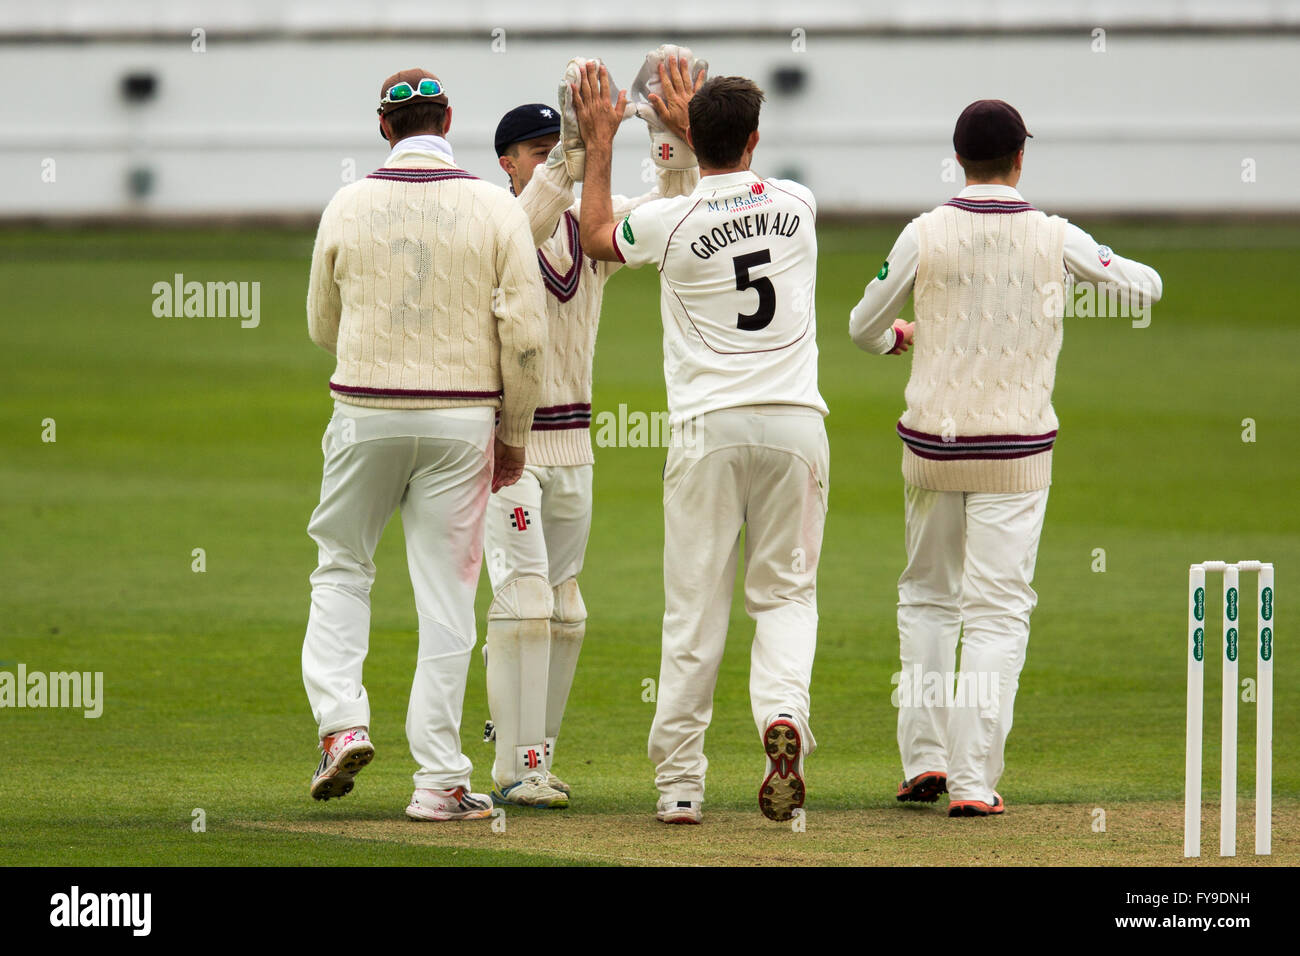 London, UK. 24 April 2016. Groenewald celebrates getting the wicket of Steve Davies bowling for Somerset on Day - Stock Image